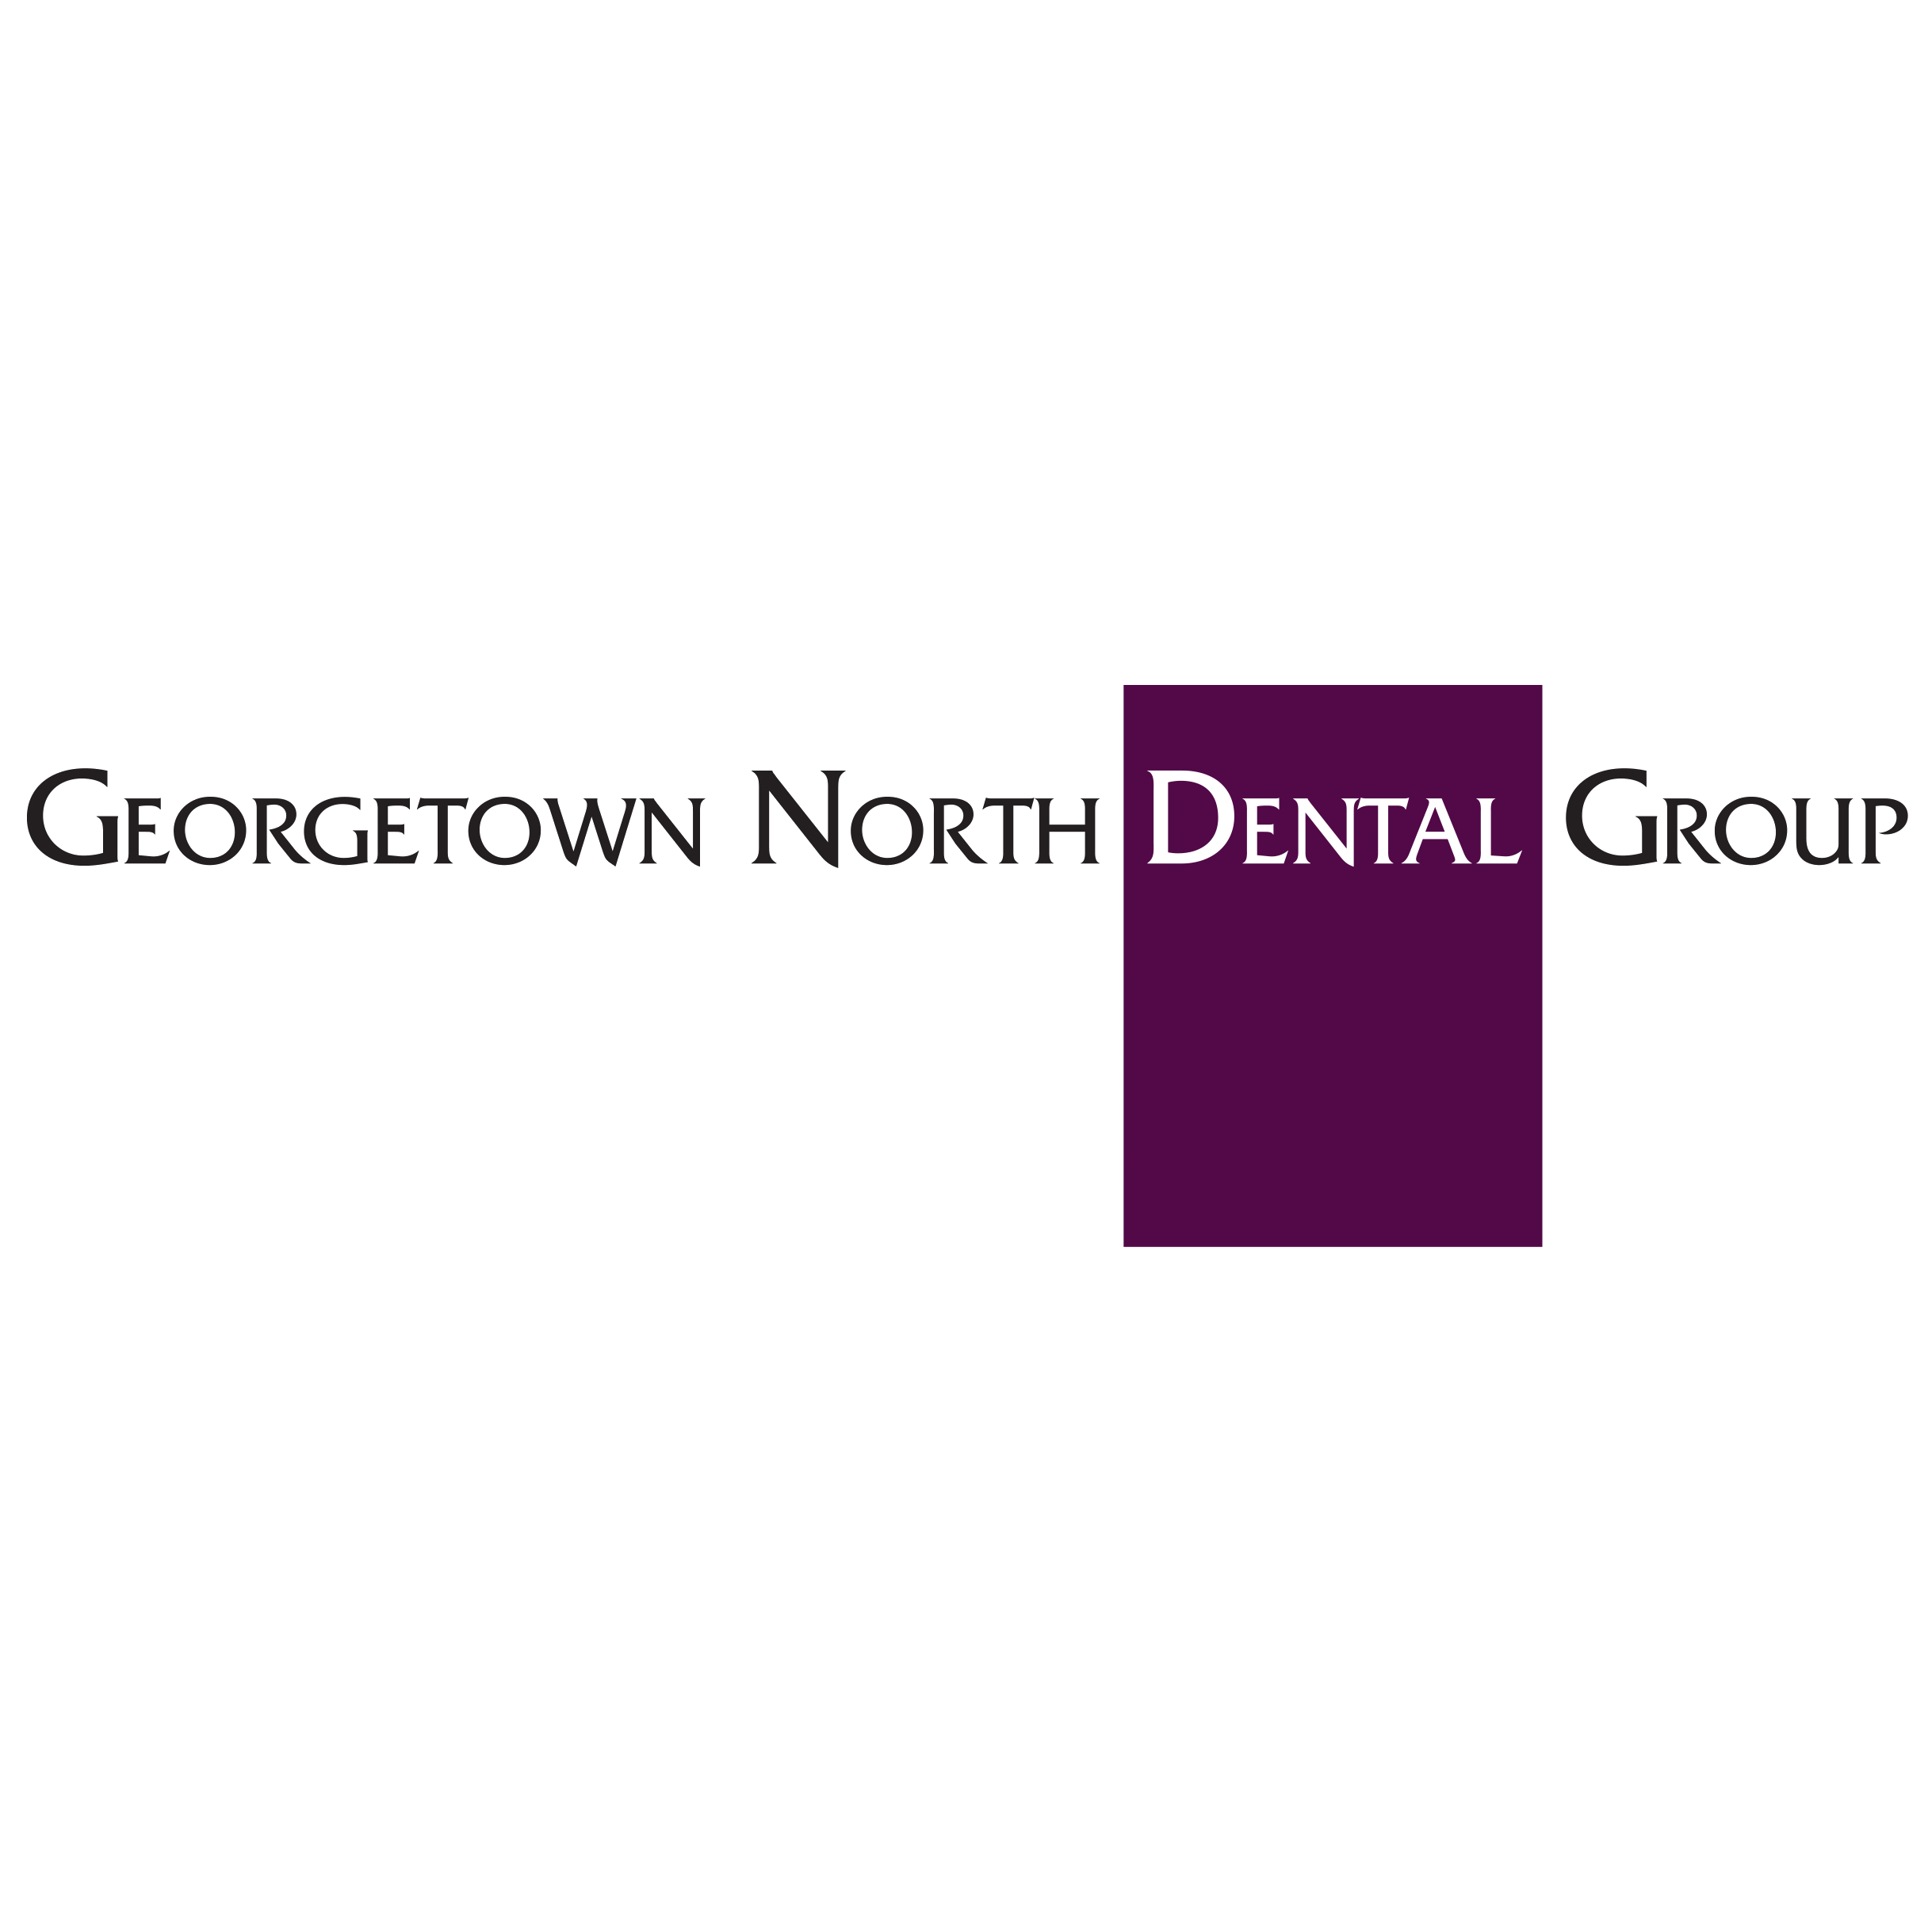 Georgetown North Dental Group